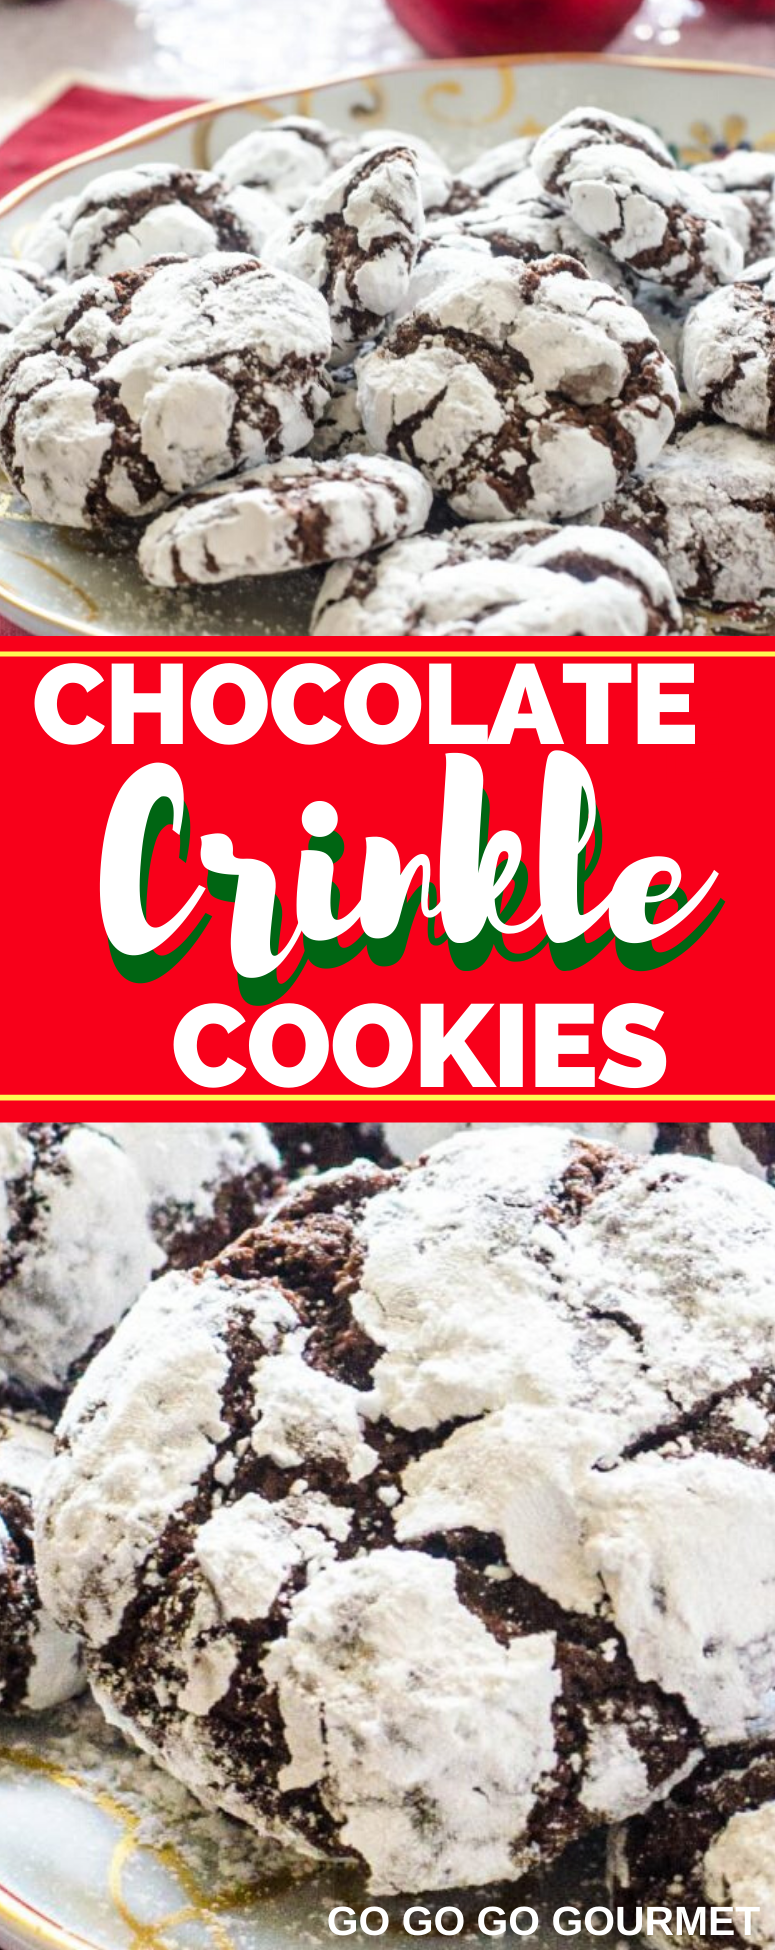 Forget the cake mix, this easy Chocolate Crinkle Cookies recipe is the best! These chewy, fudgy cookies are made with cocoa powder to make the ultimate Christmas cookie. They're almost like a brownie in cookie form! #gogogogourmet #chocolatecrinklecookies #crinklecookies #christmascookies via @gogogogourmet